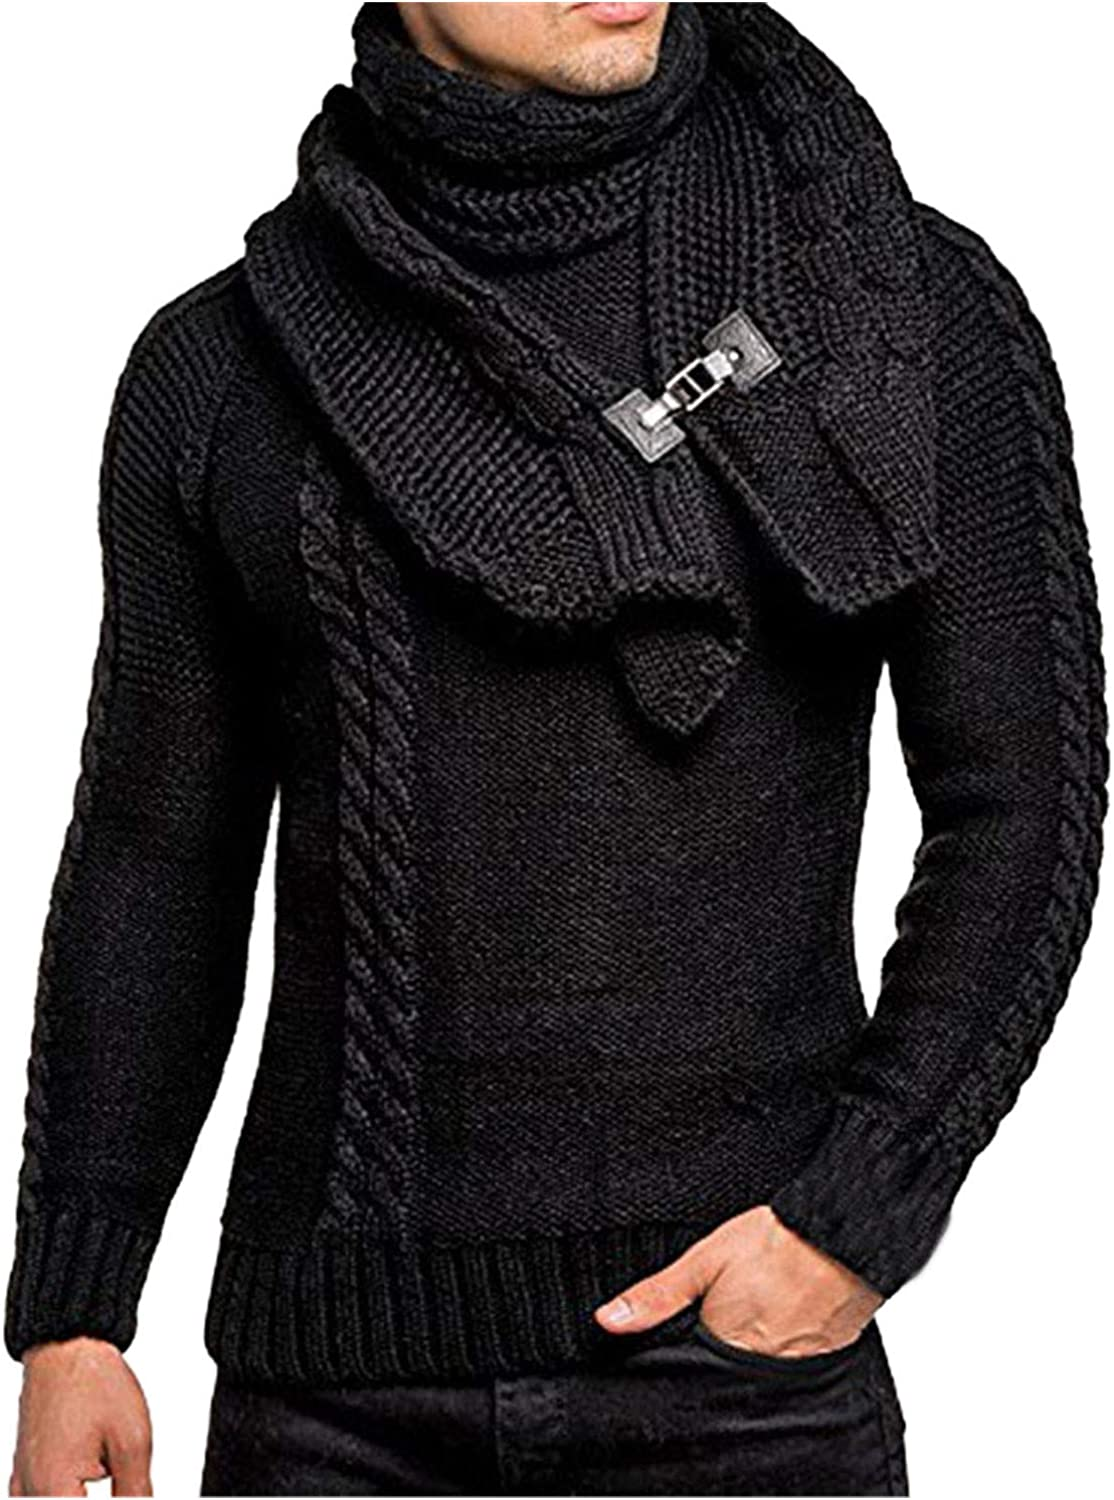 Mens Novelty Sweaters Slim Pullover Knitwear Casual Neck Wrap Head Cable Sweater Jumper